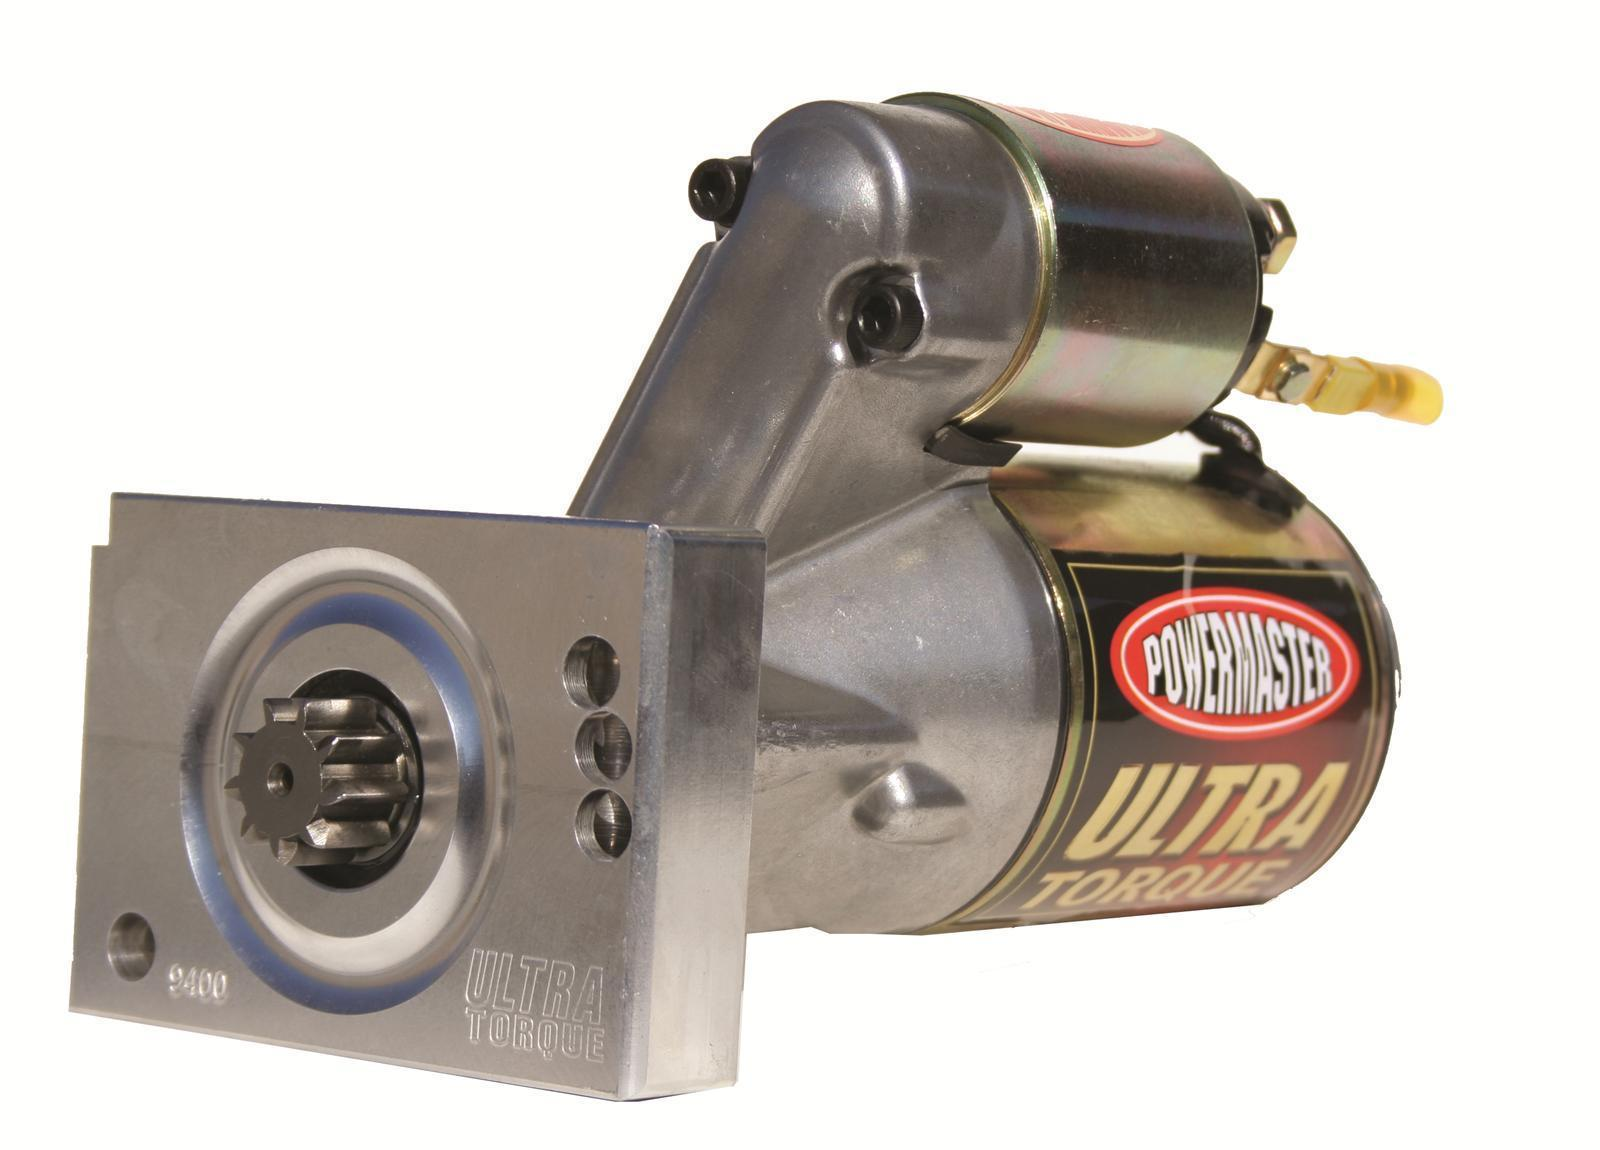 hight resolution of powermaster ultratorque 3 4hp starter motor pm9400 suit 153 168t chev sb v8